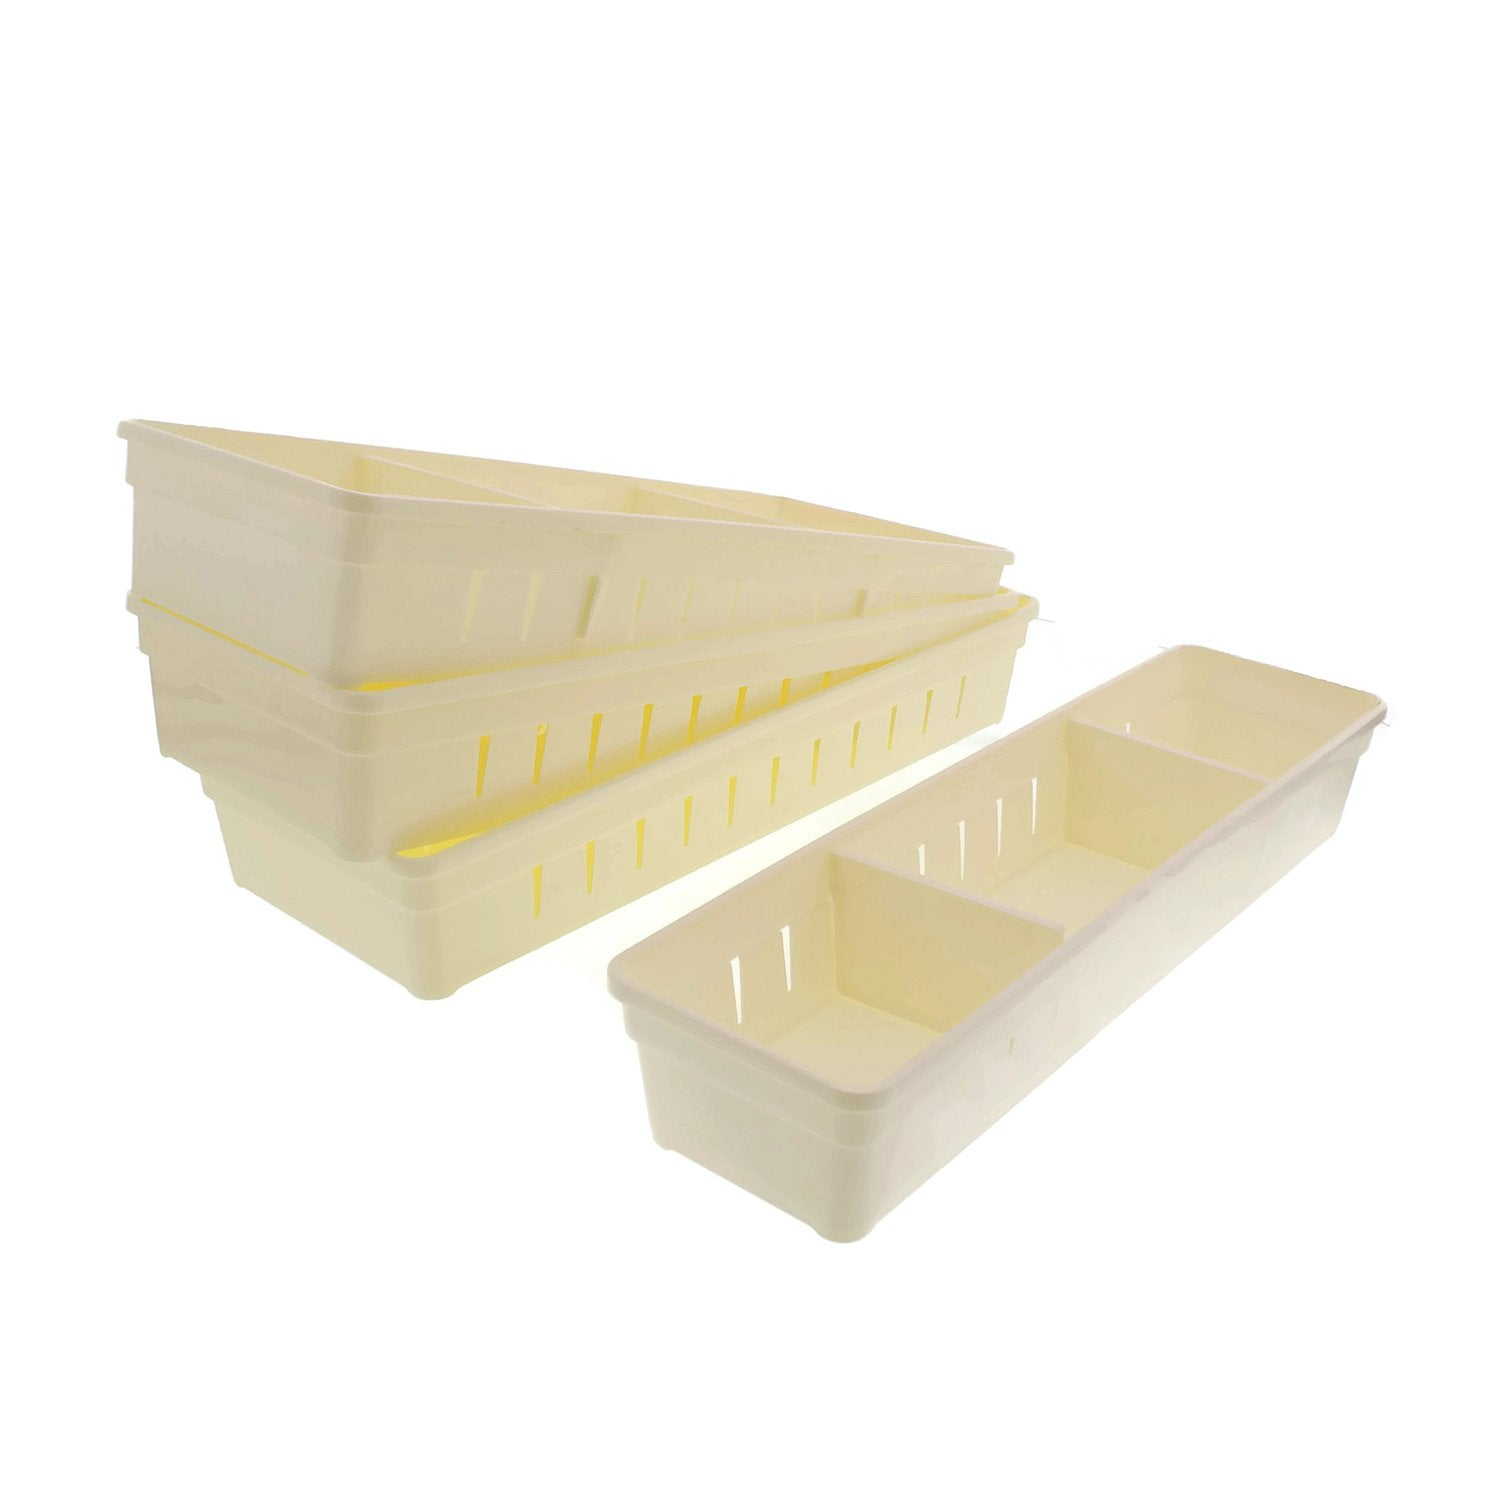 Cheftor Plastic Storage Drawers Drawer Organizers with Dividers for Stationery, Makeup, Silverware, set of 4 (White)